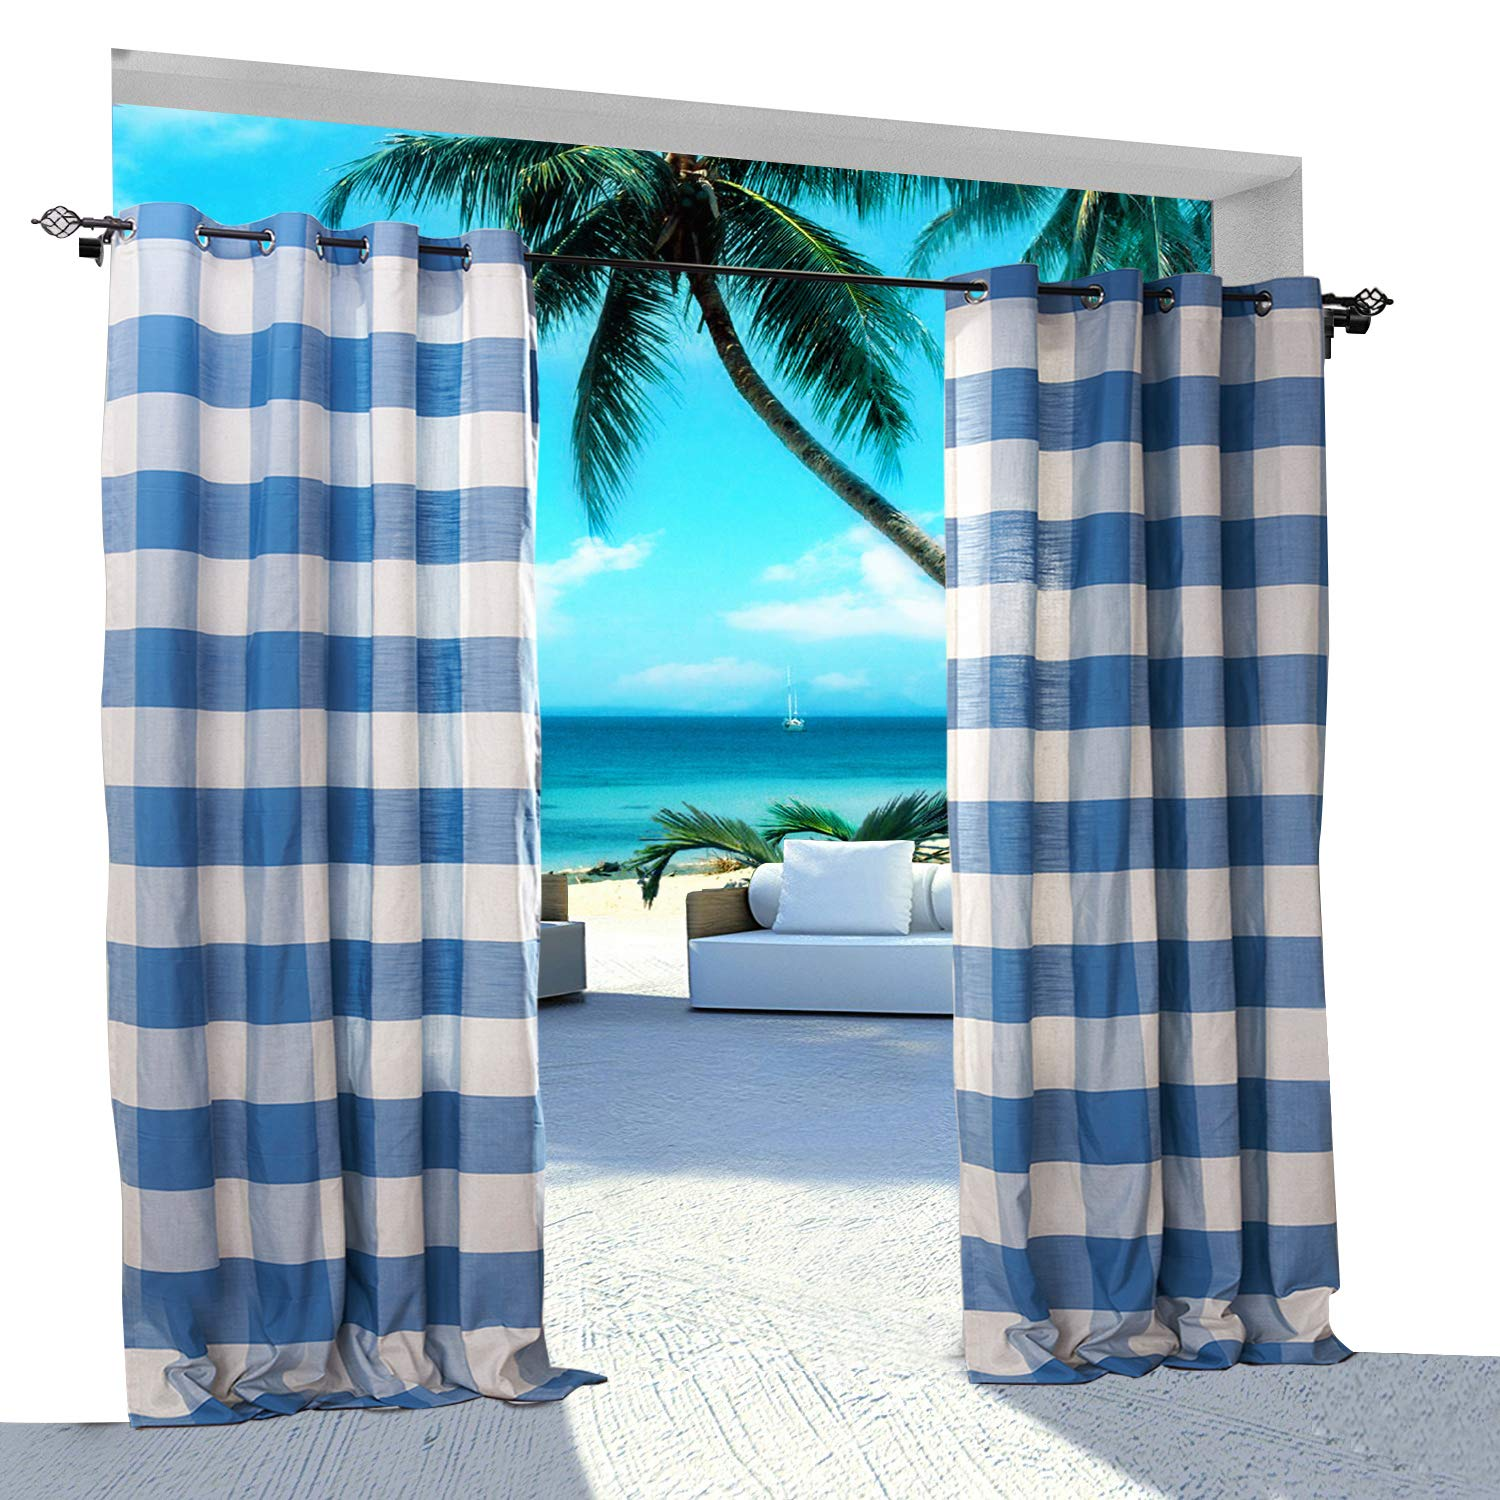 Extra Wide Gingham Plaid Outdoor Curtain 200'' W x 96'' L Eyelet Grommet For Traverse Rod at Front Porch Pergola Cabana Covered Patio Gazebo Dock and Beach Home WHITE BLUE